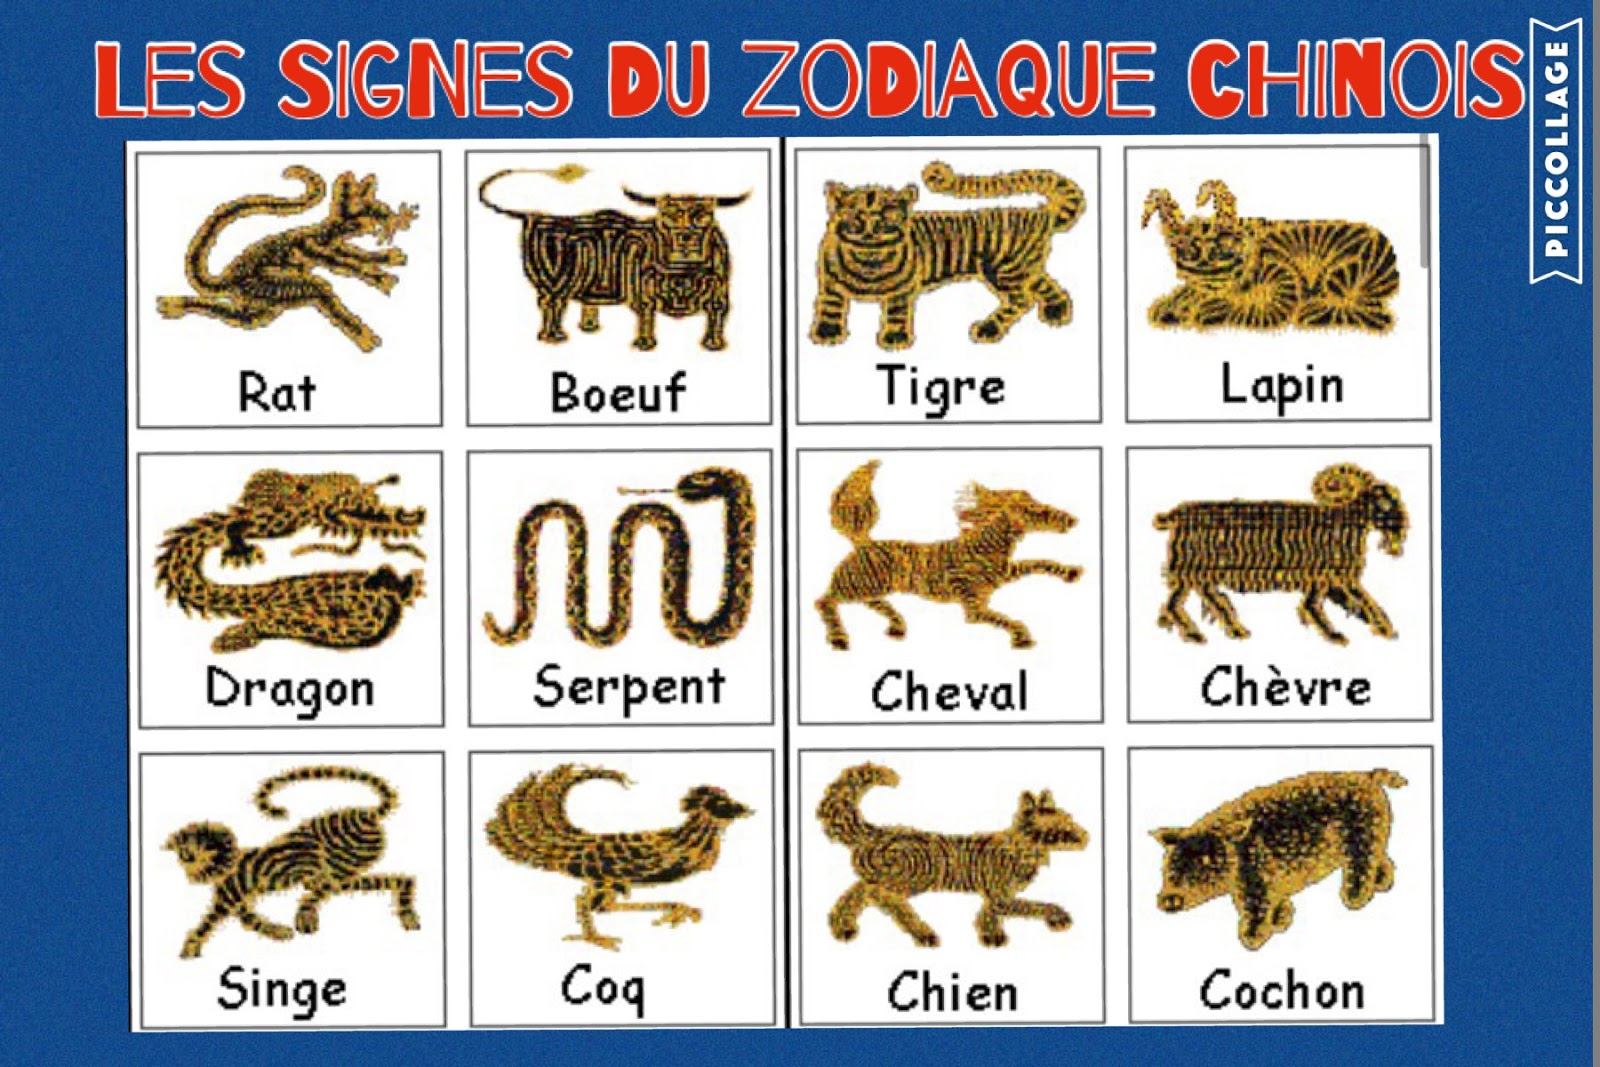 This Was A Great Opportunity To Have Some Fun With French Phonics And Practice The Sound Ch Sounds Like Shhh In English